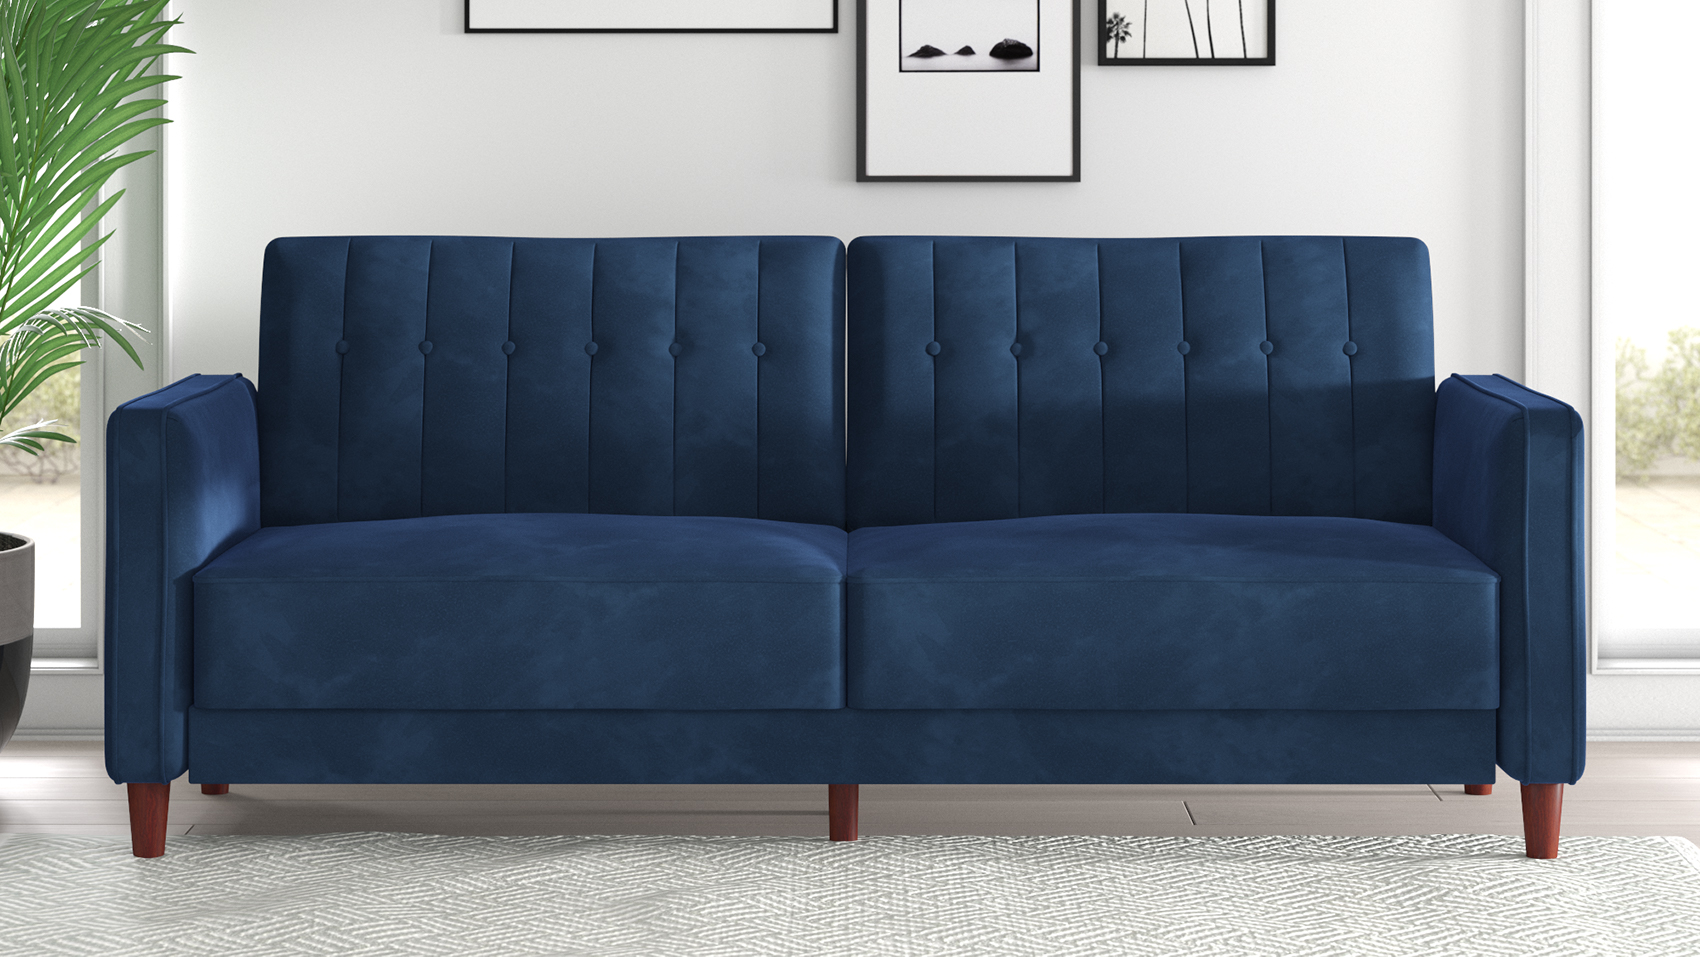 Best Wayfair Couches Top Rated Sectionals Futons And Loveseats Cnn Underscored